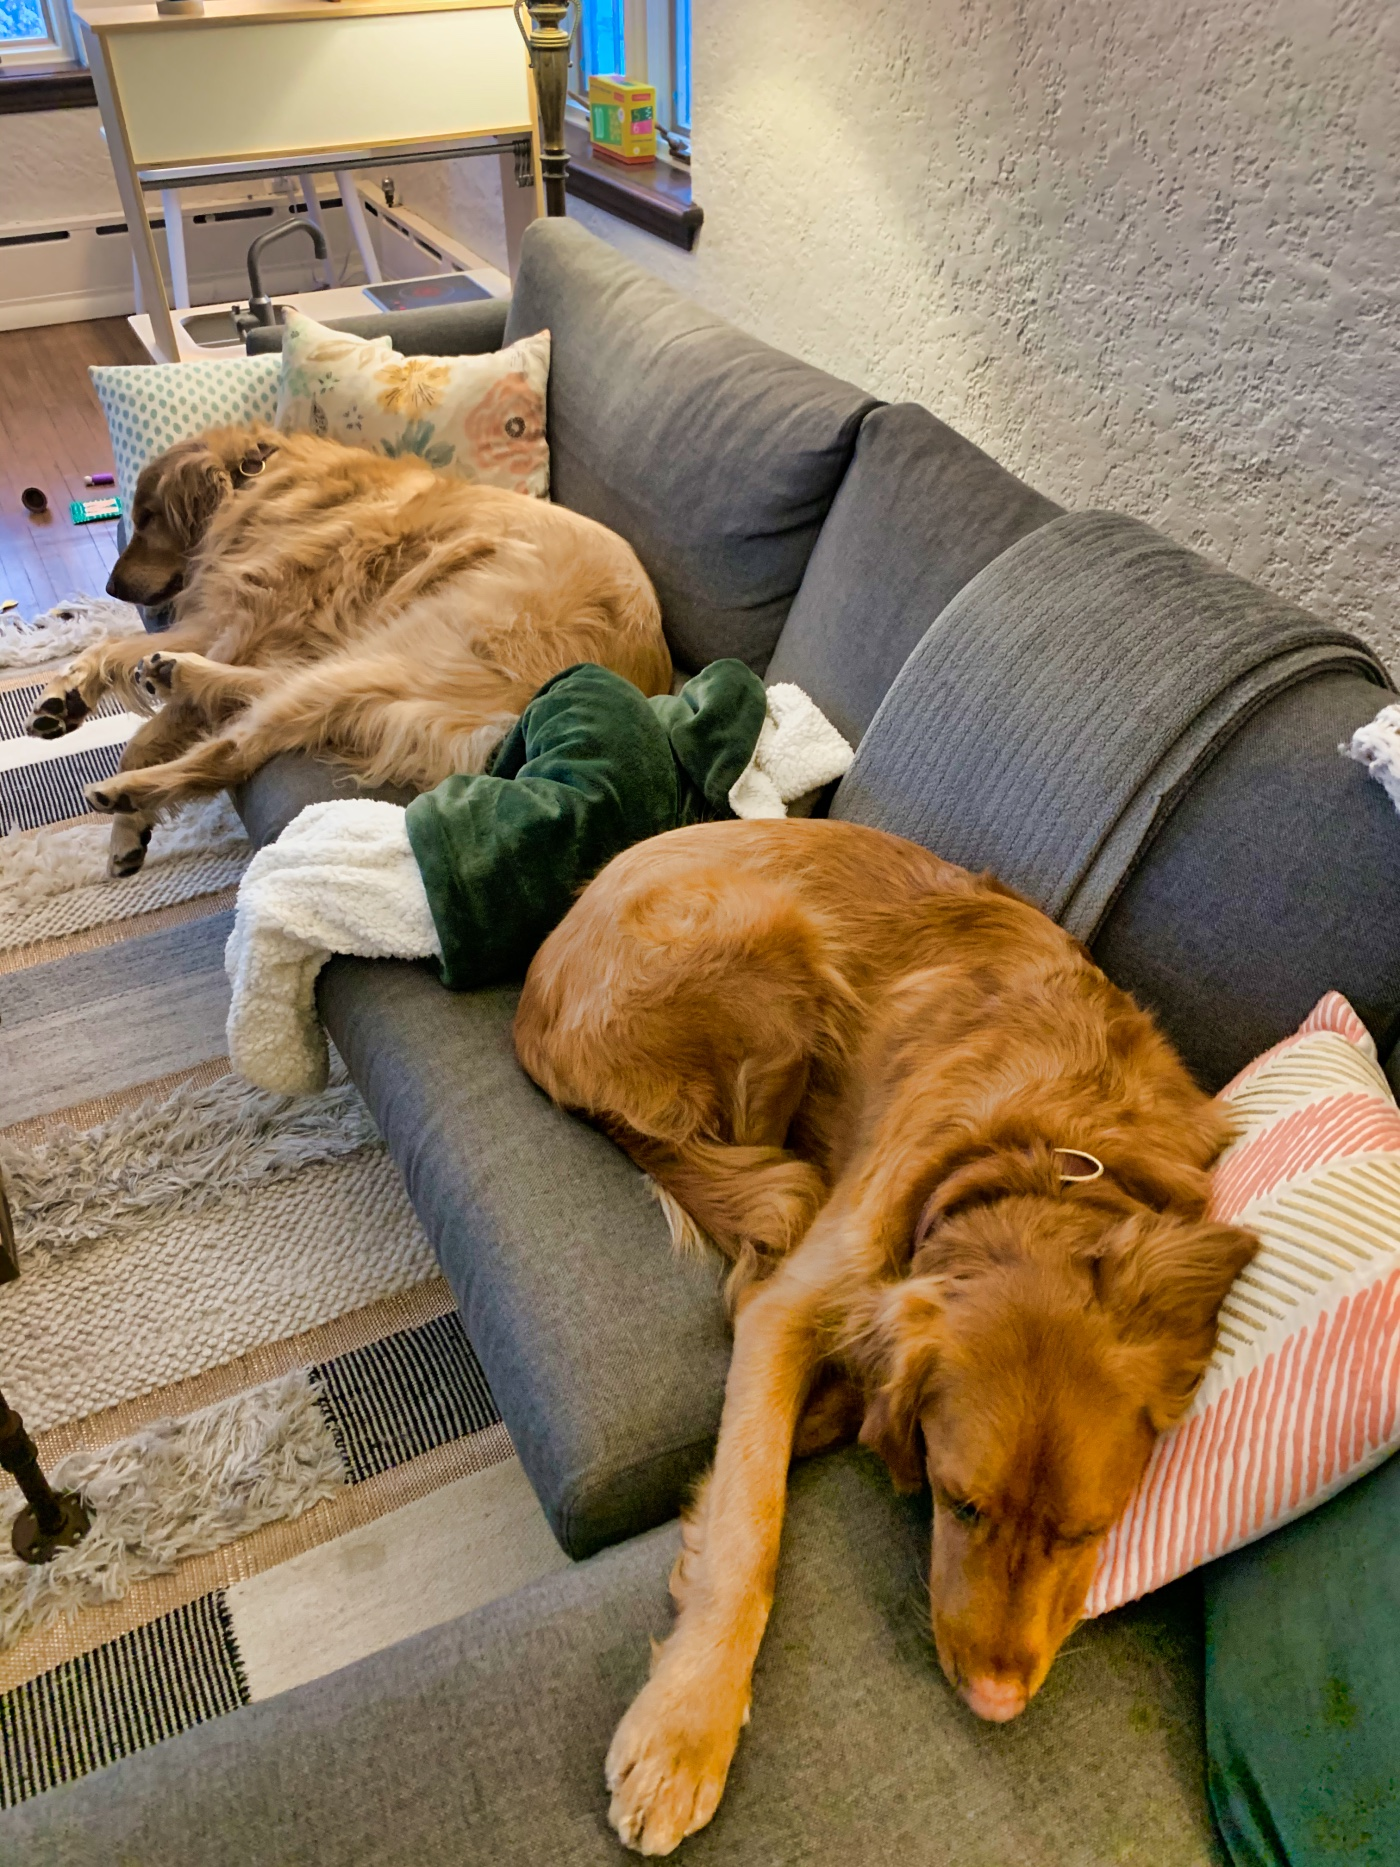 My two golden retrievers sleeping on the couch